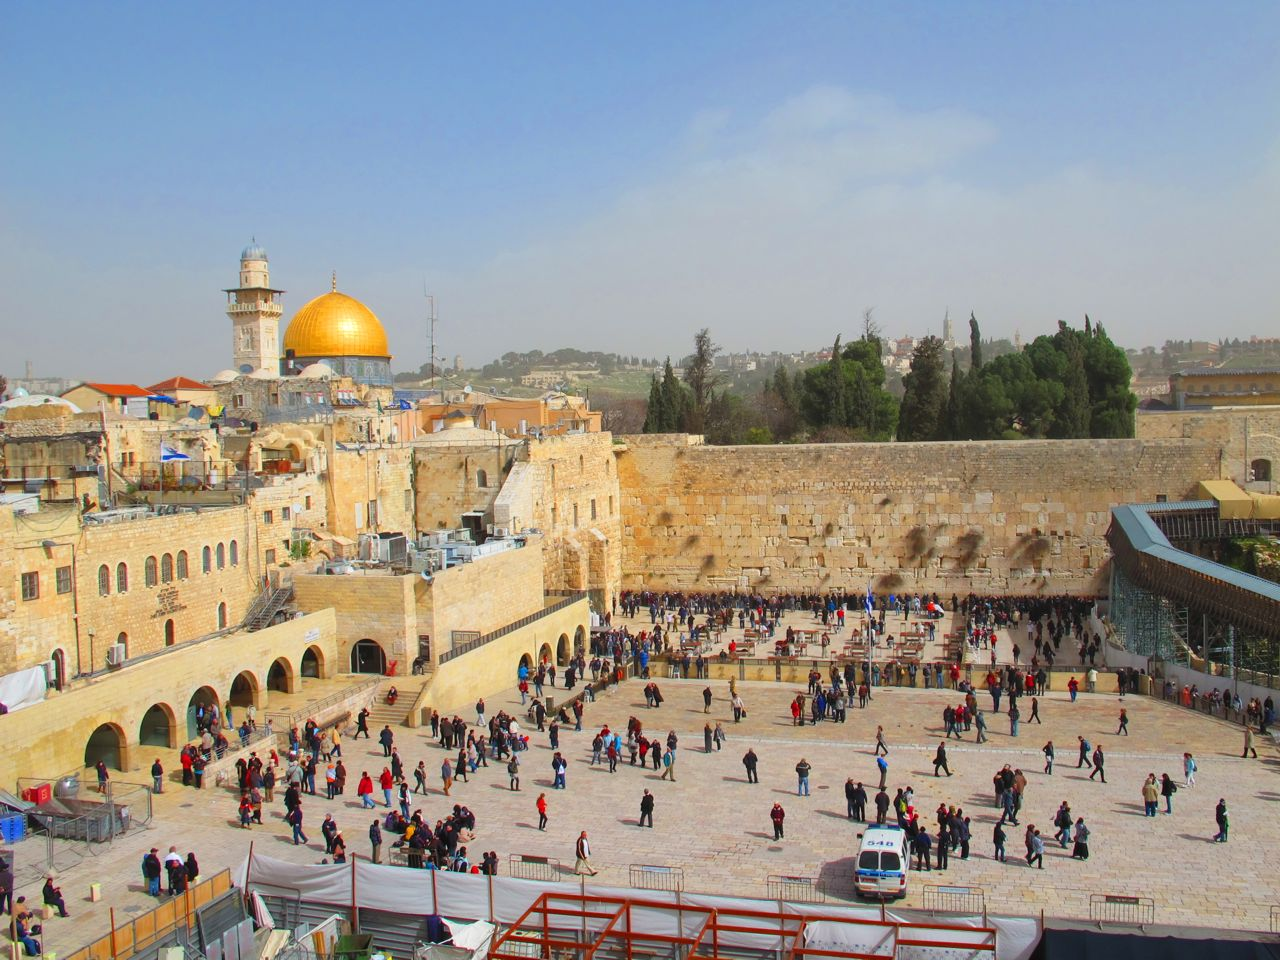 The Western Wall below, Dome of the Rock & Temple Mount above